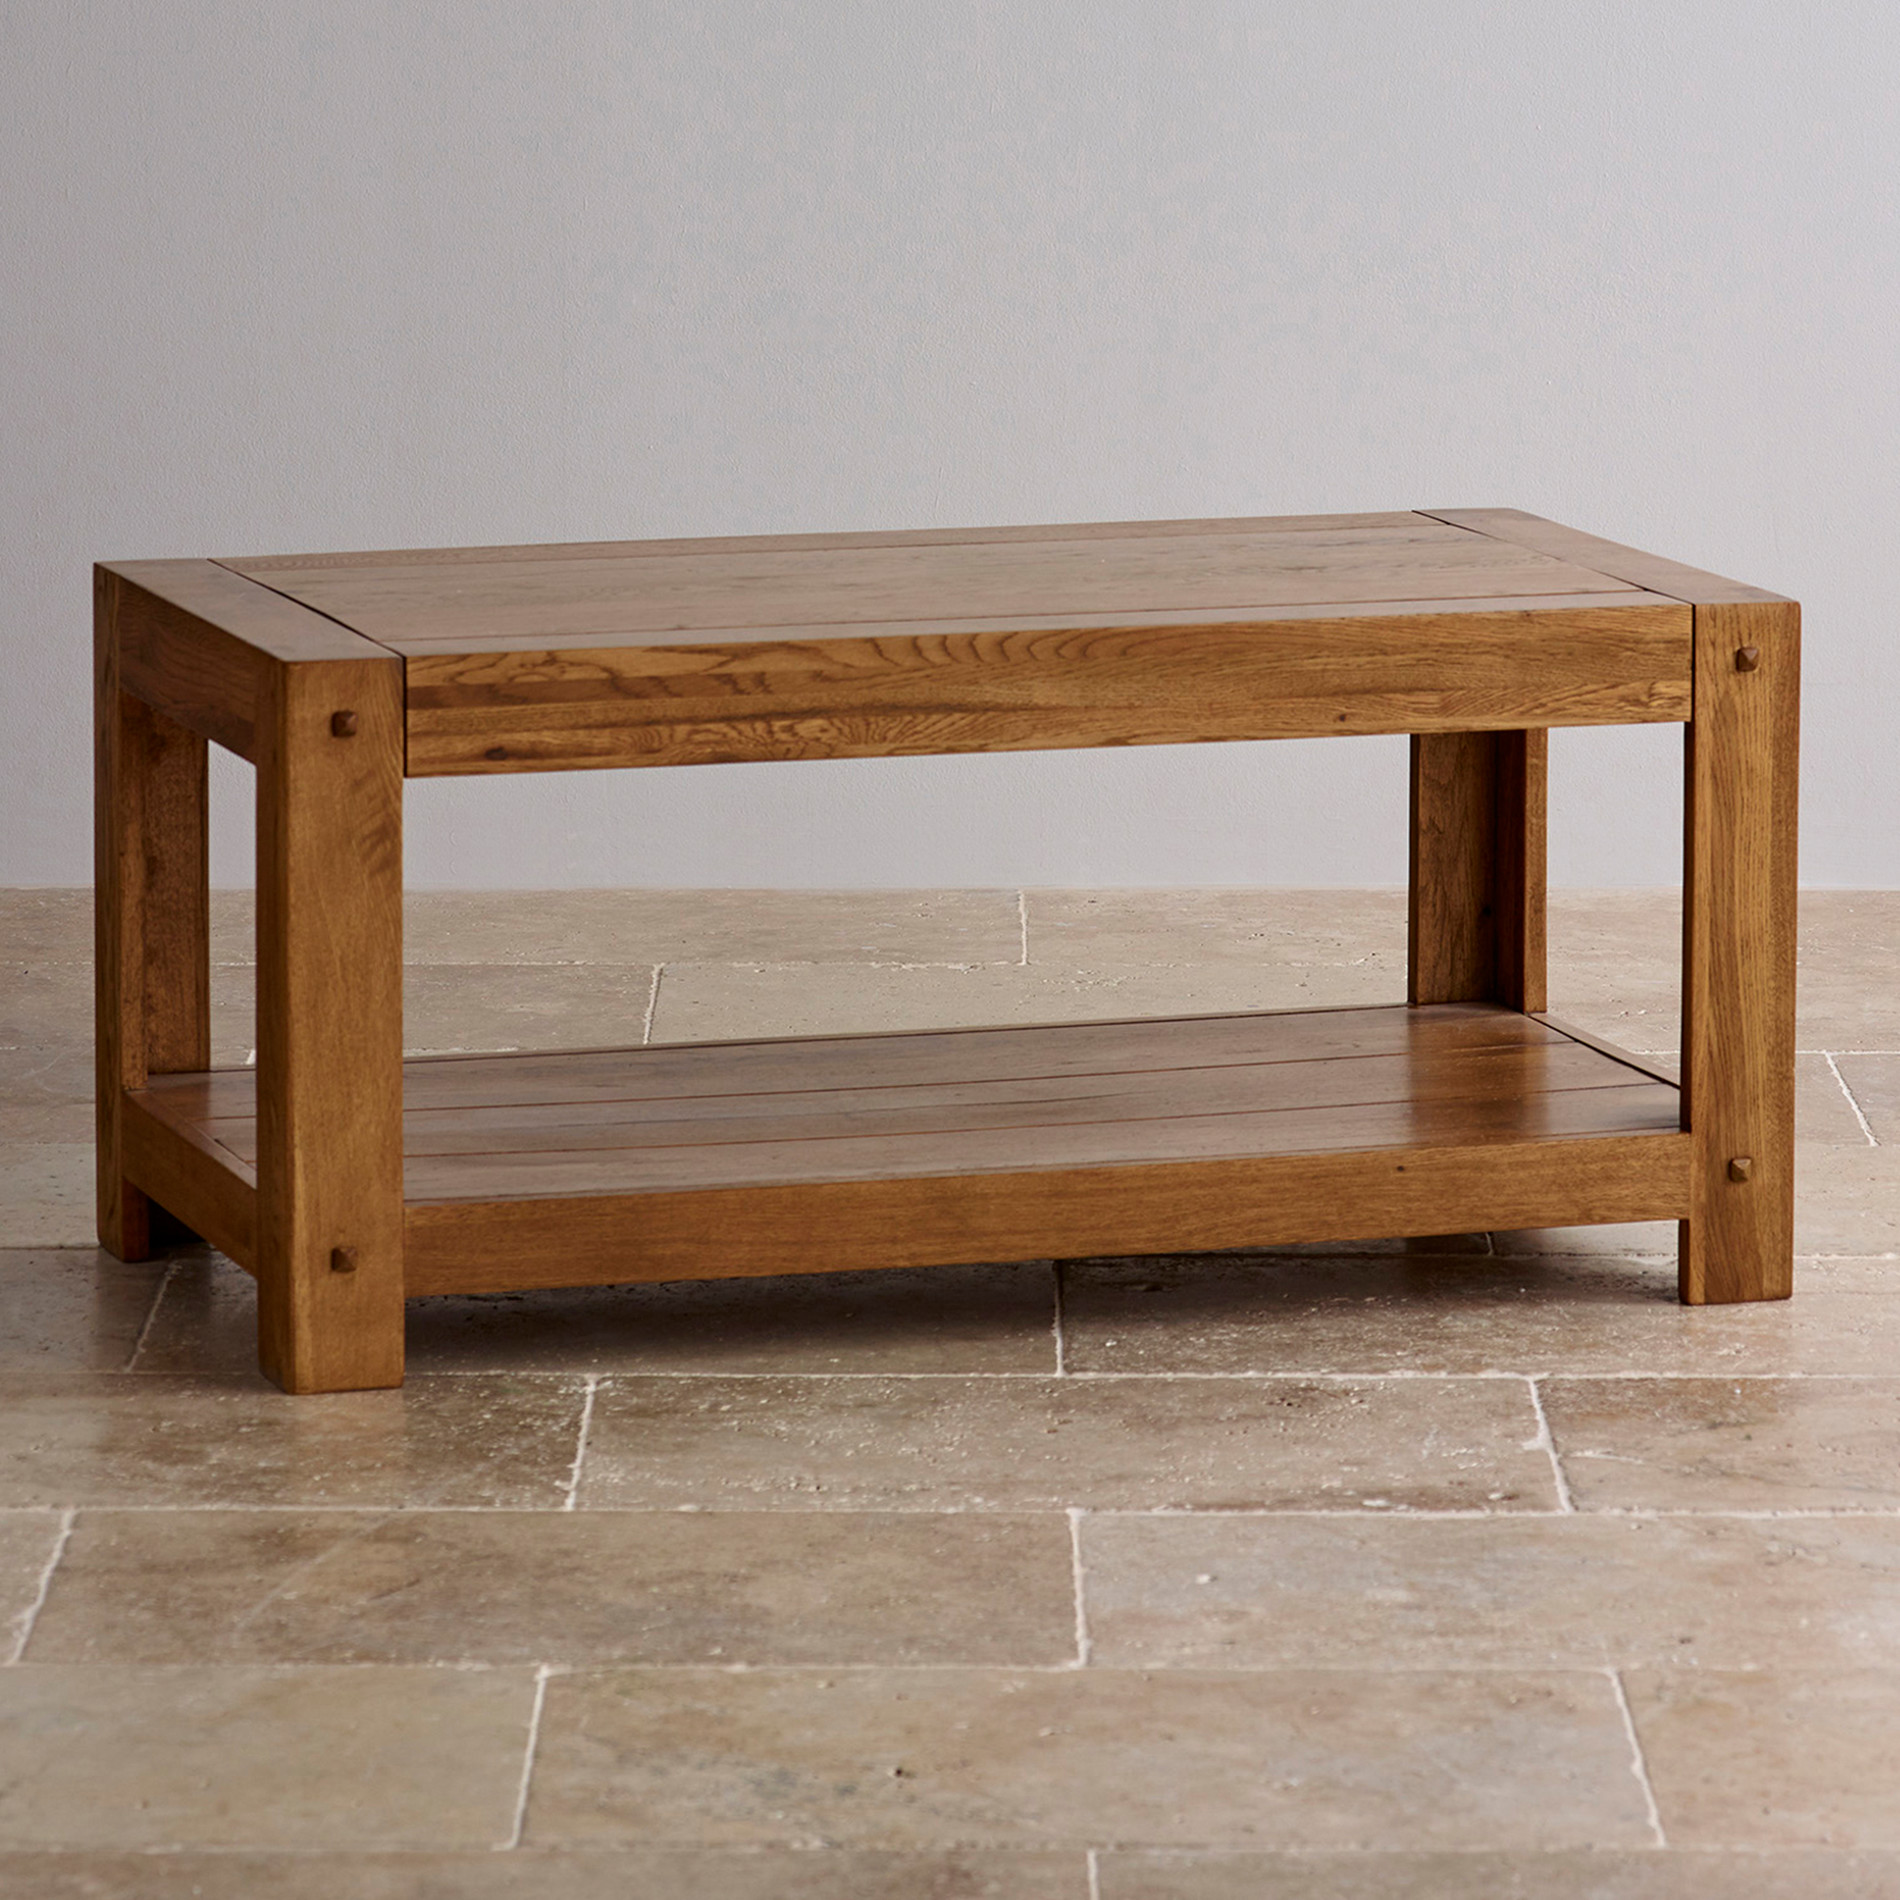 Eiche Couchtisch Quercus Coffee Table In Rustic Solid Oak Oak Furniture Land